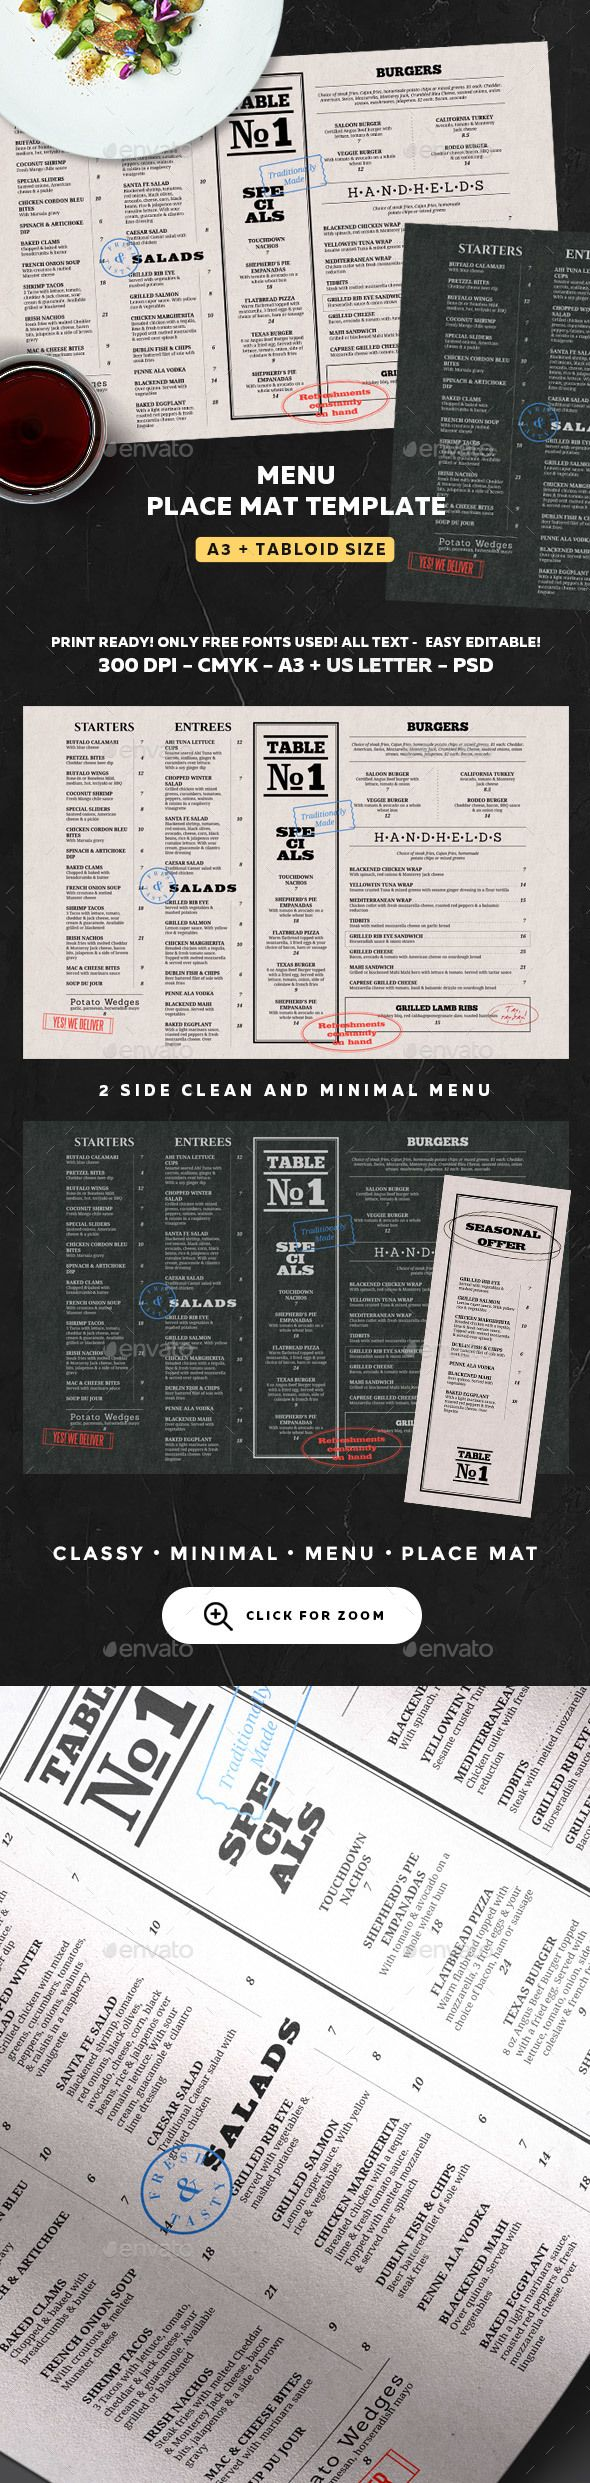 restaurant menu menu templates restaurant menu template and food